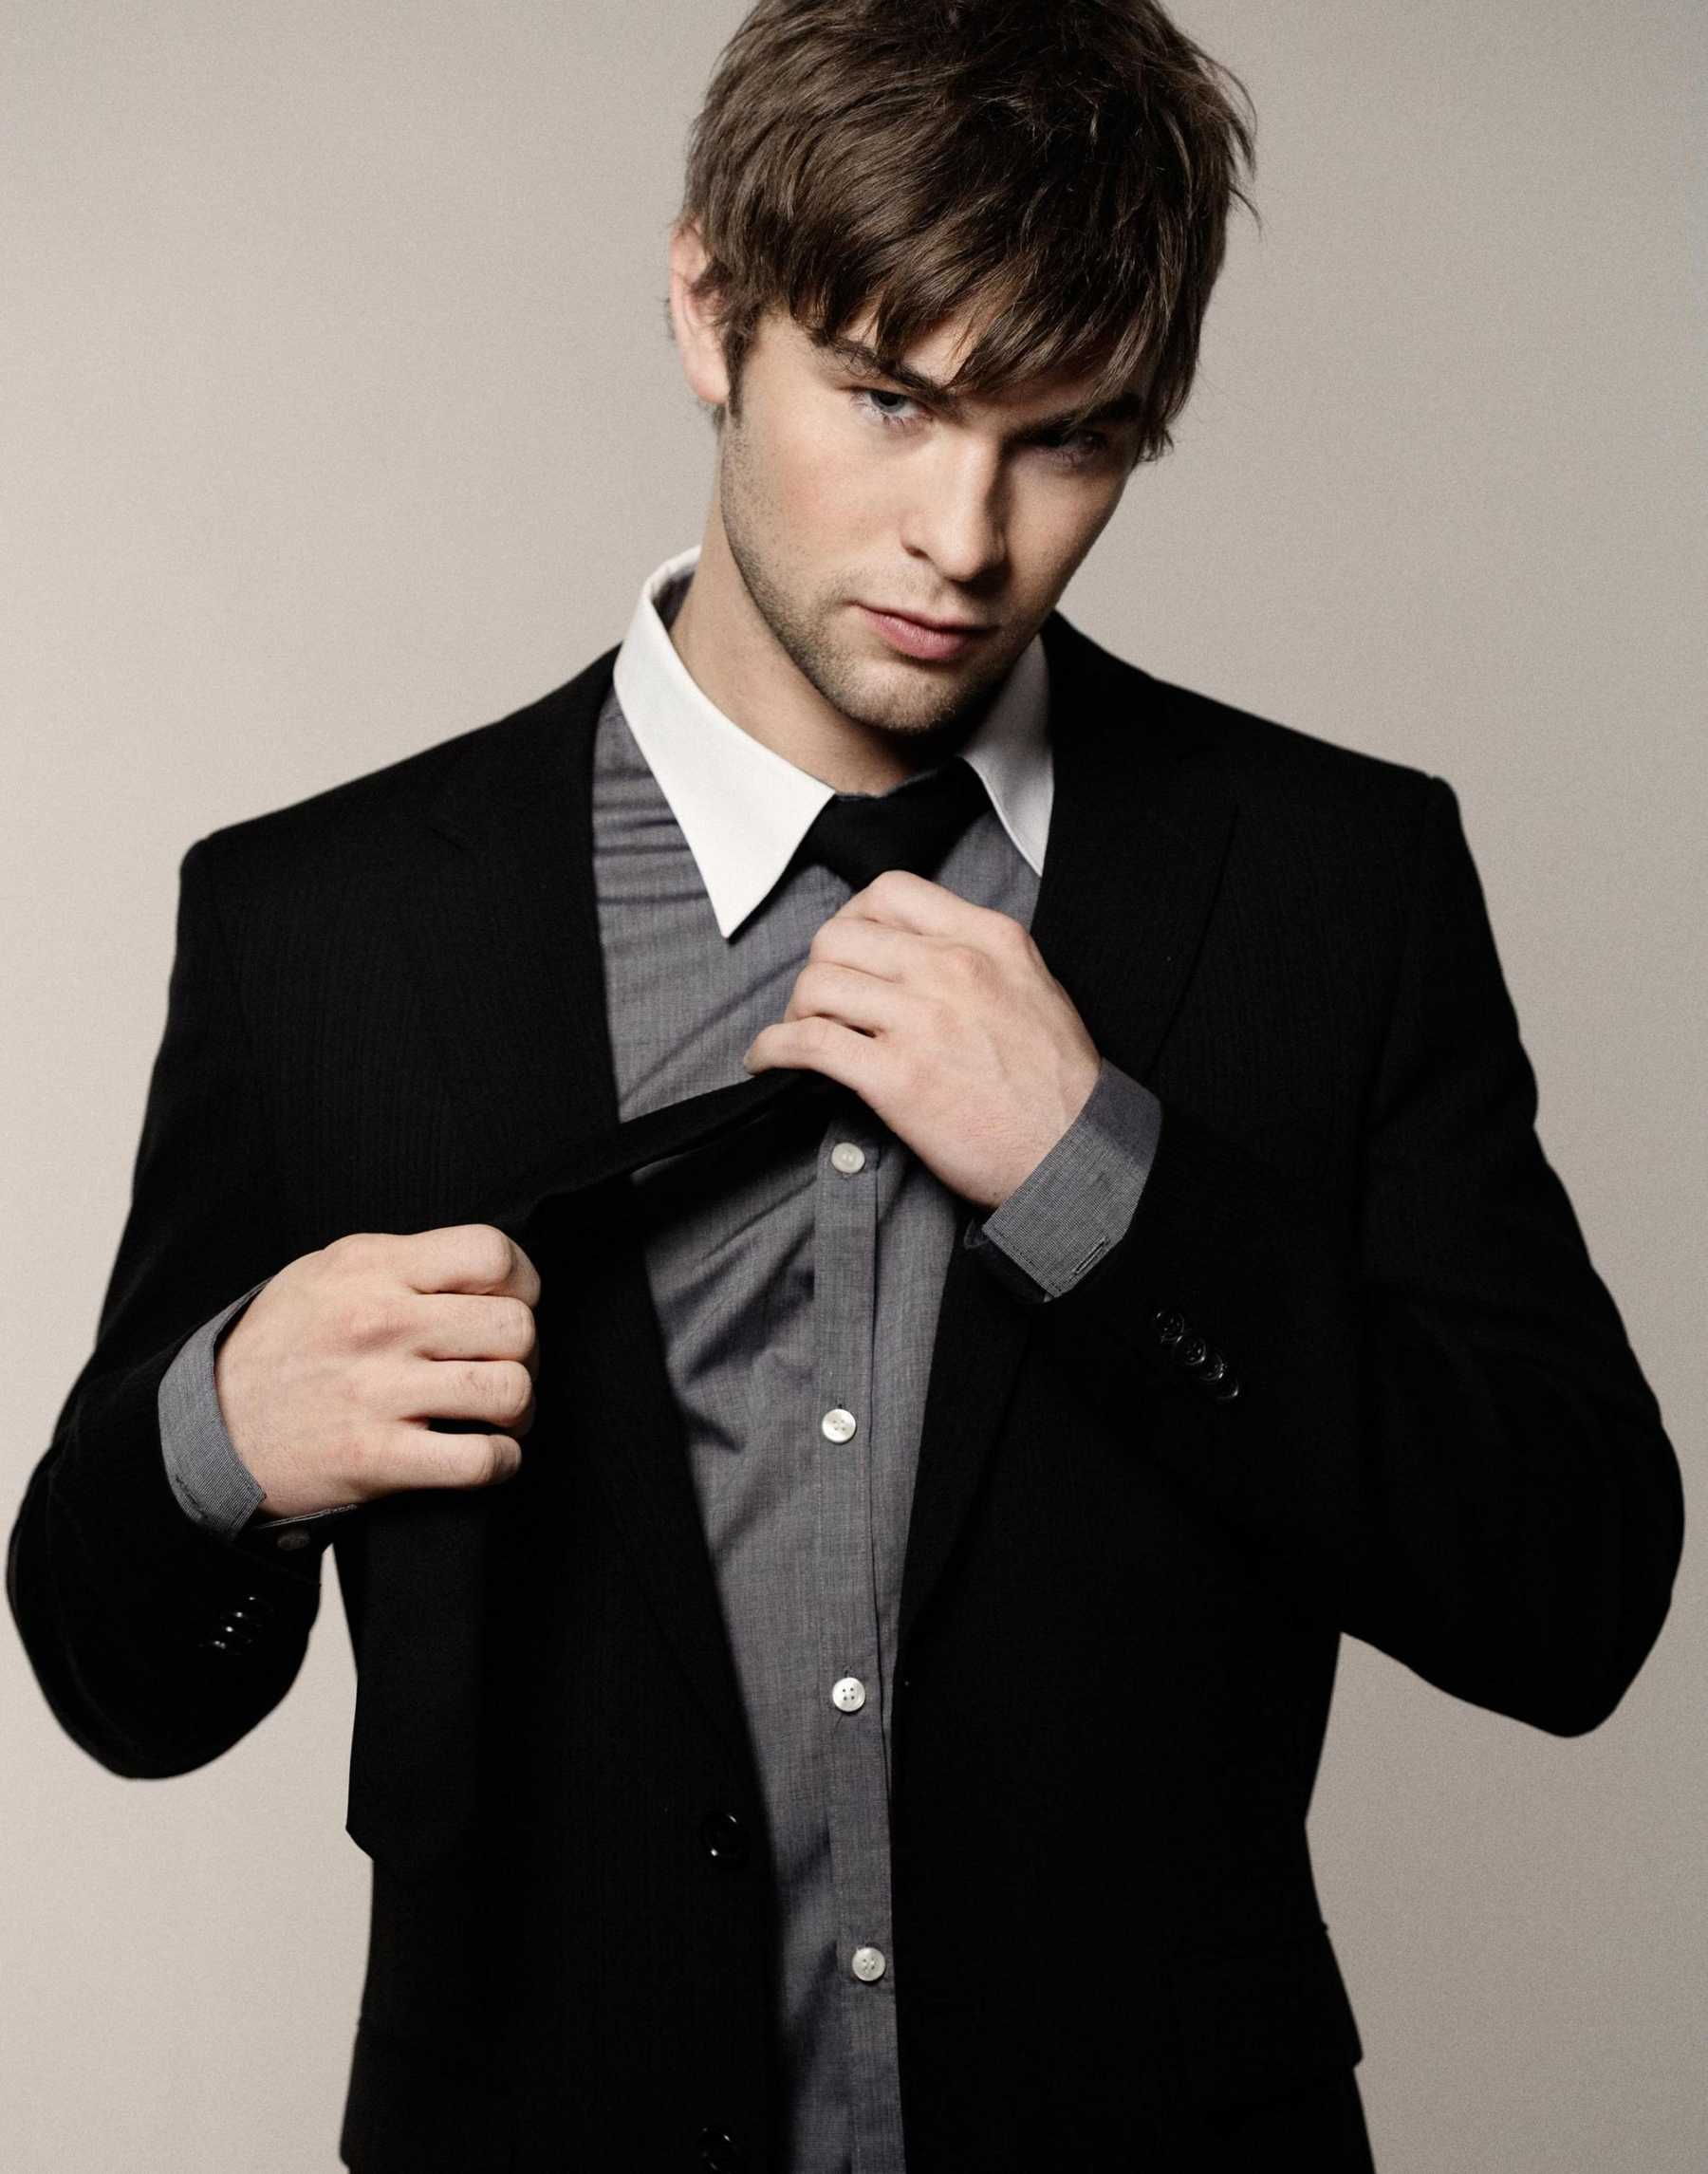 Glee Adds Gossip Girl Alum Chace Crawford To The 100th Episode All-Star Lineup